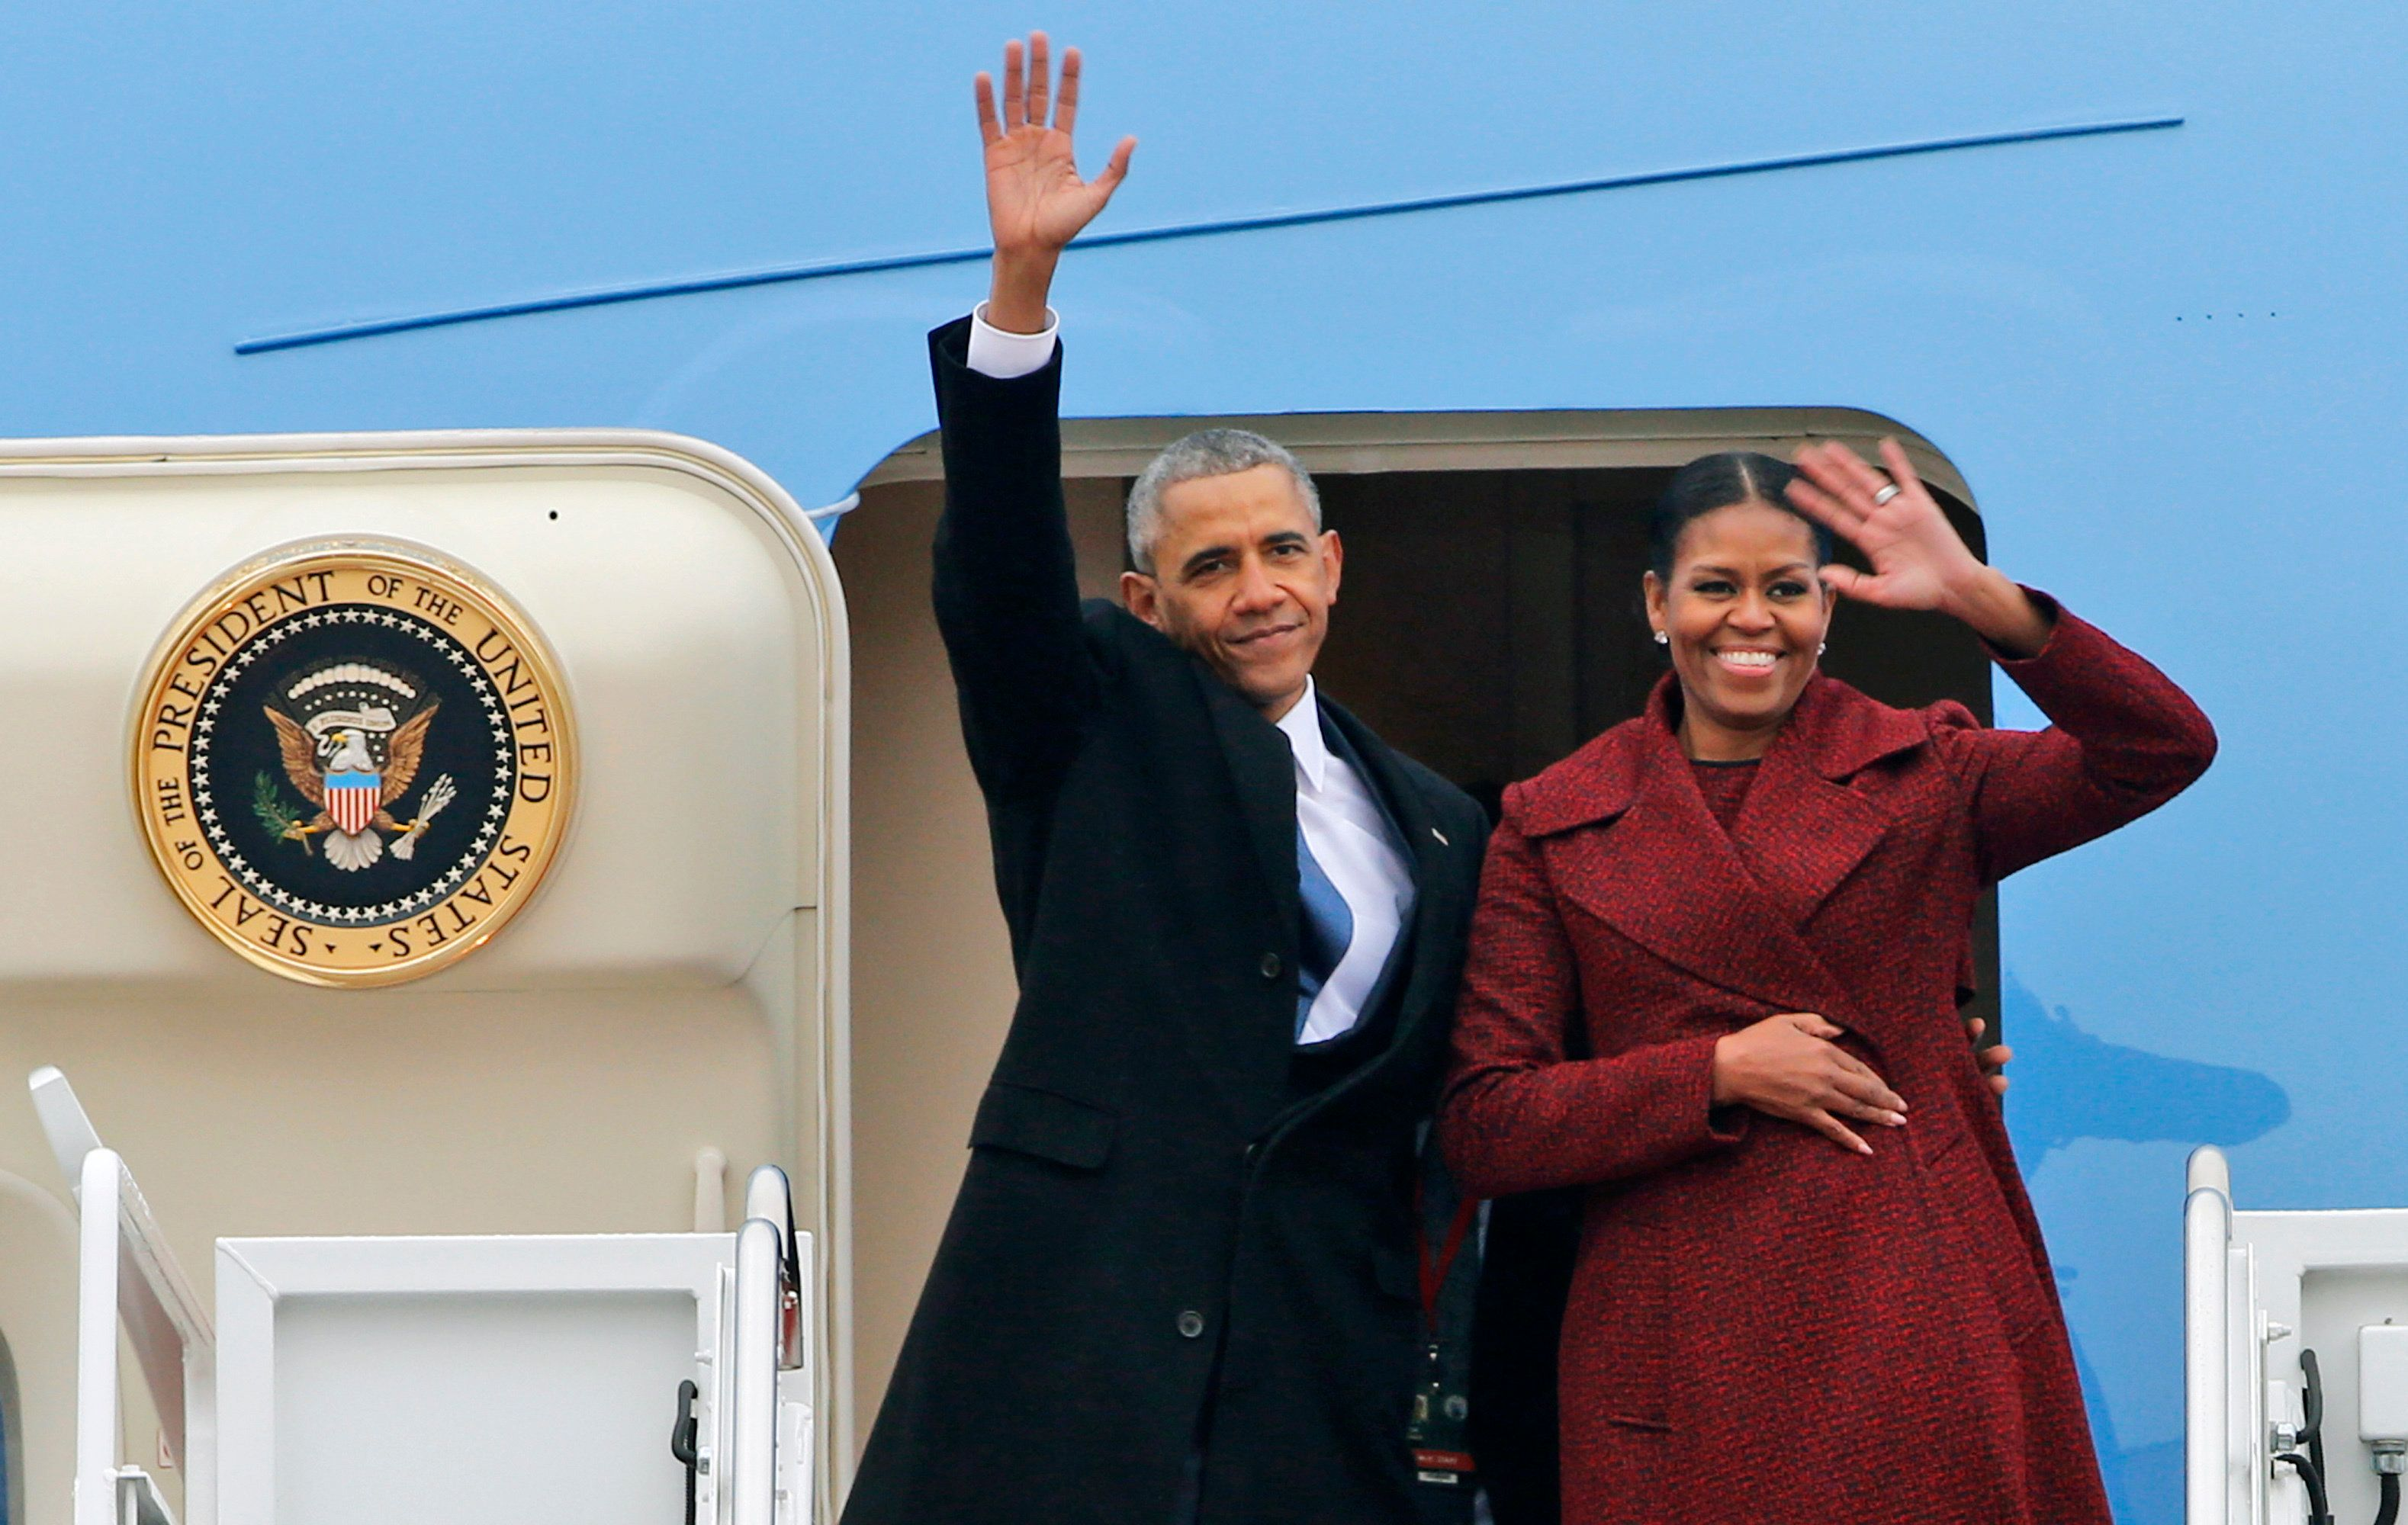 Former President Barack Obama and his wife Michelle wave to the crowd as they board an Air Force jet to depart Andrews Air Force base in Andrews Air Force Base, Md., Friday, Jan. 20, 2017. (AP Photo/Steve Helber)